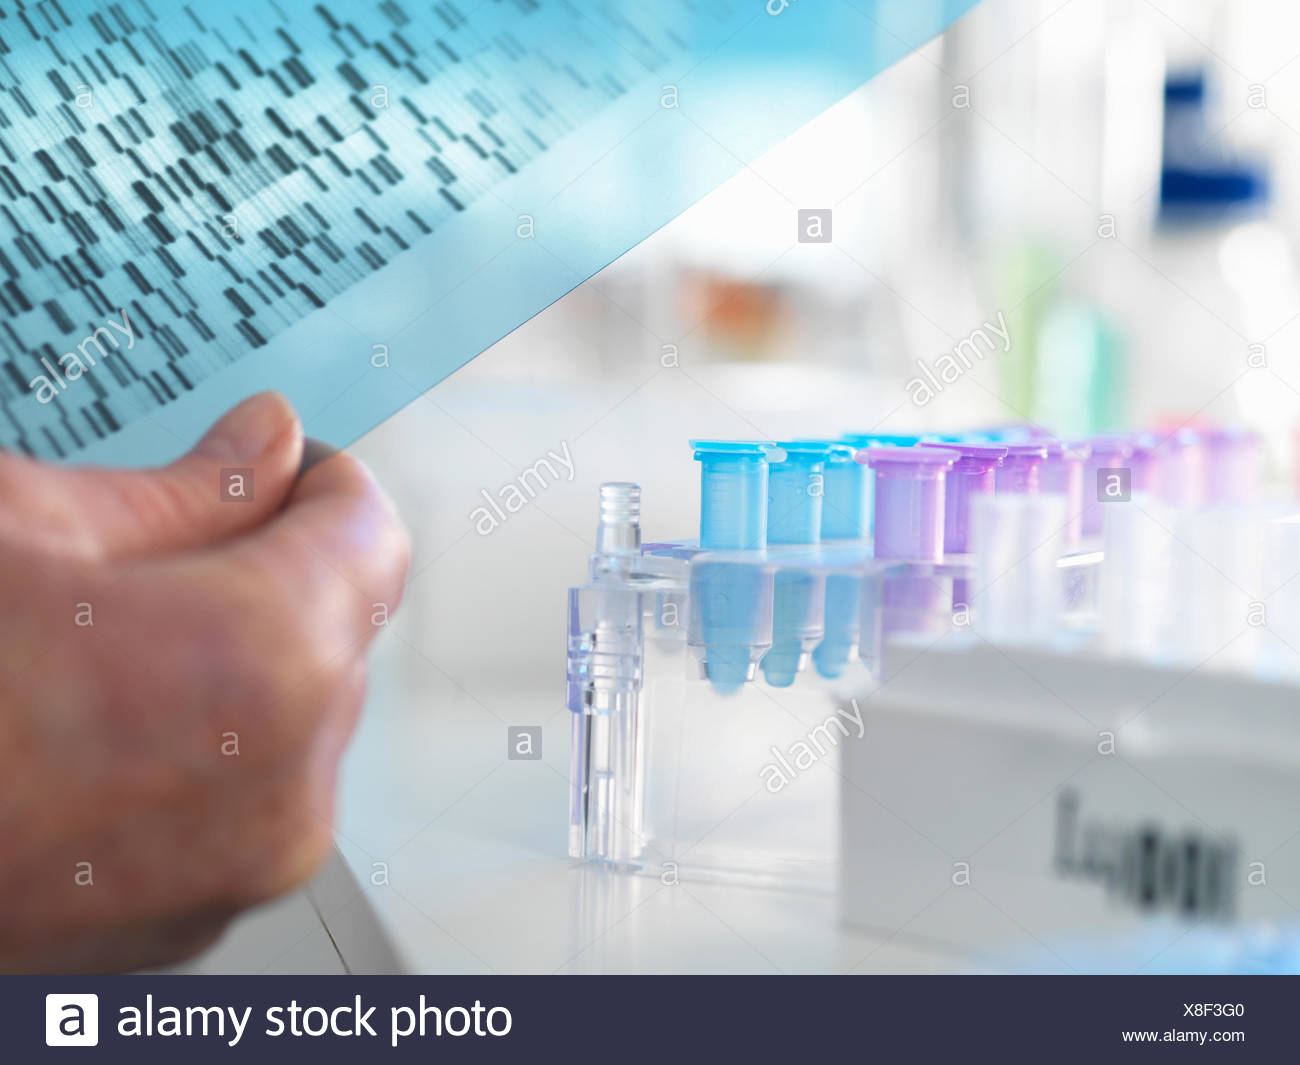 Researcher holding a DNA (deoxyribonucleic acid) gel during a genetic experiment in a laboratory - Stock Image